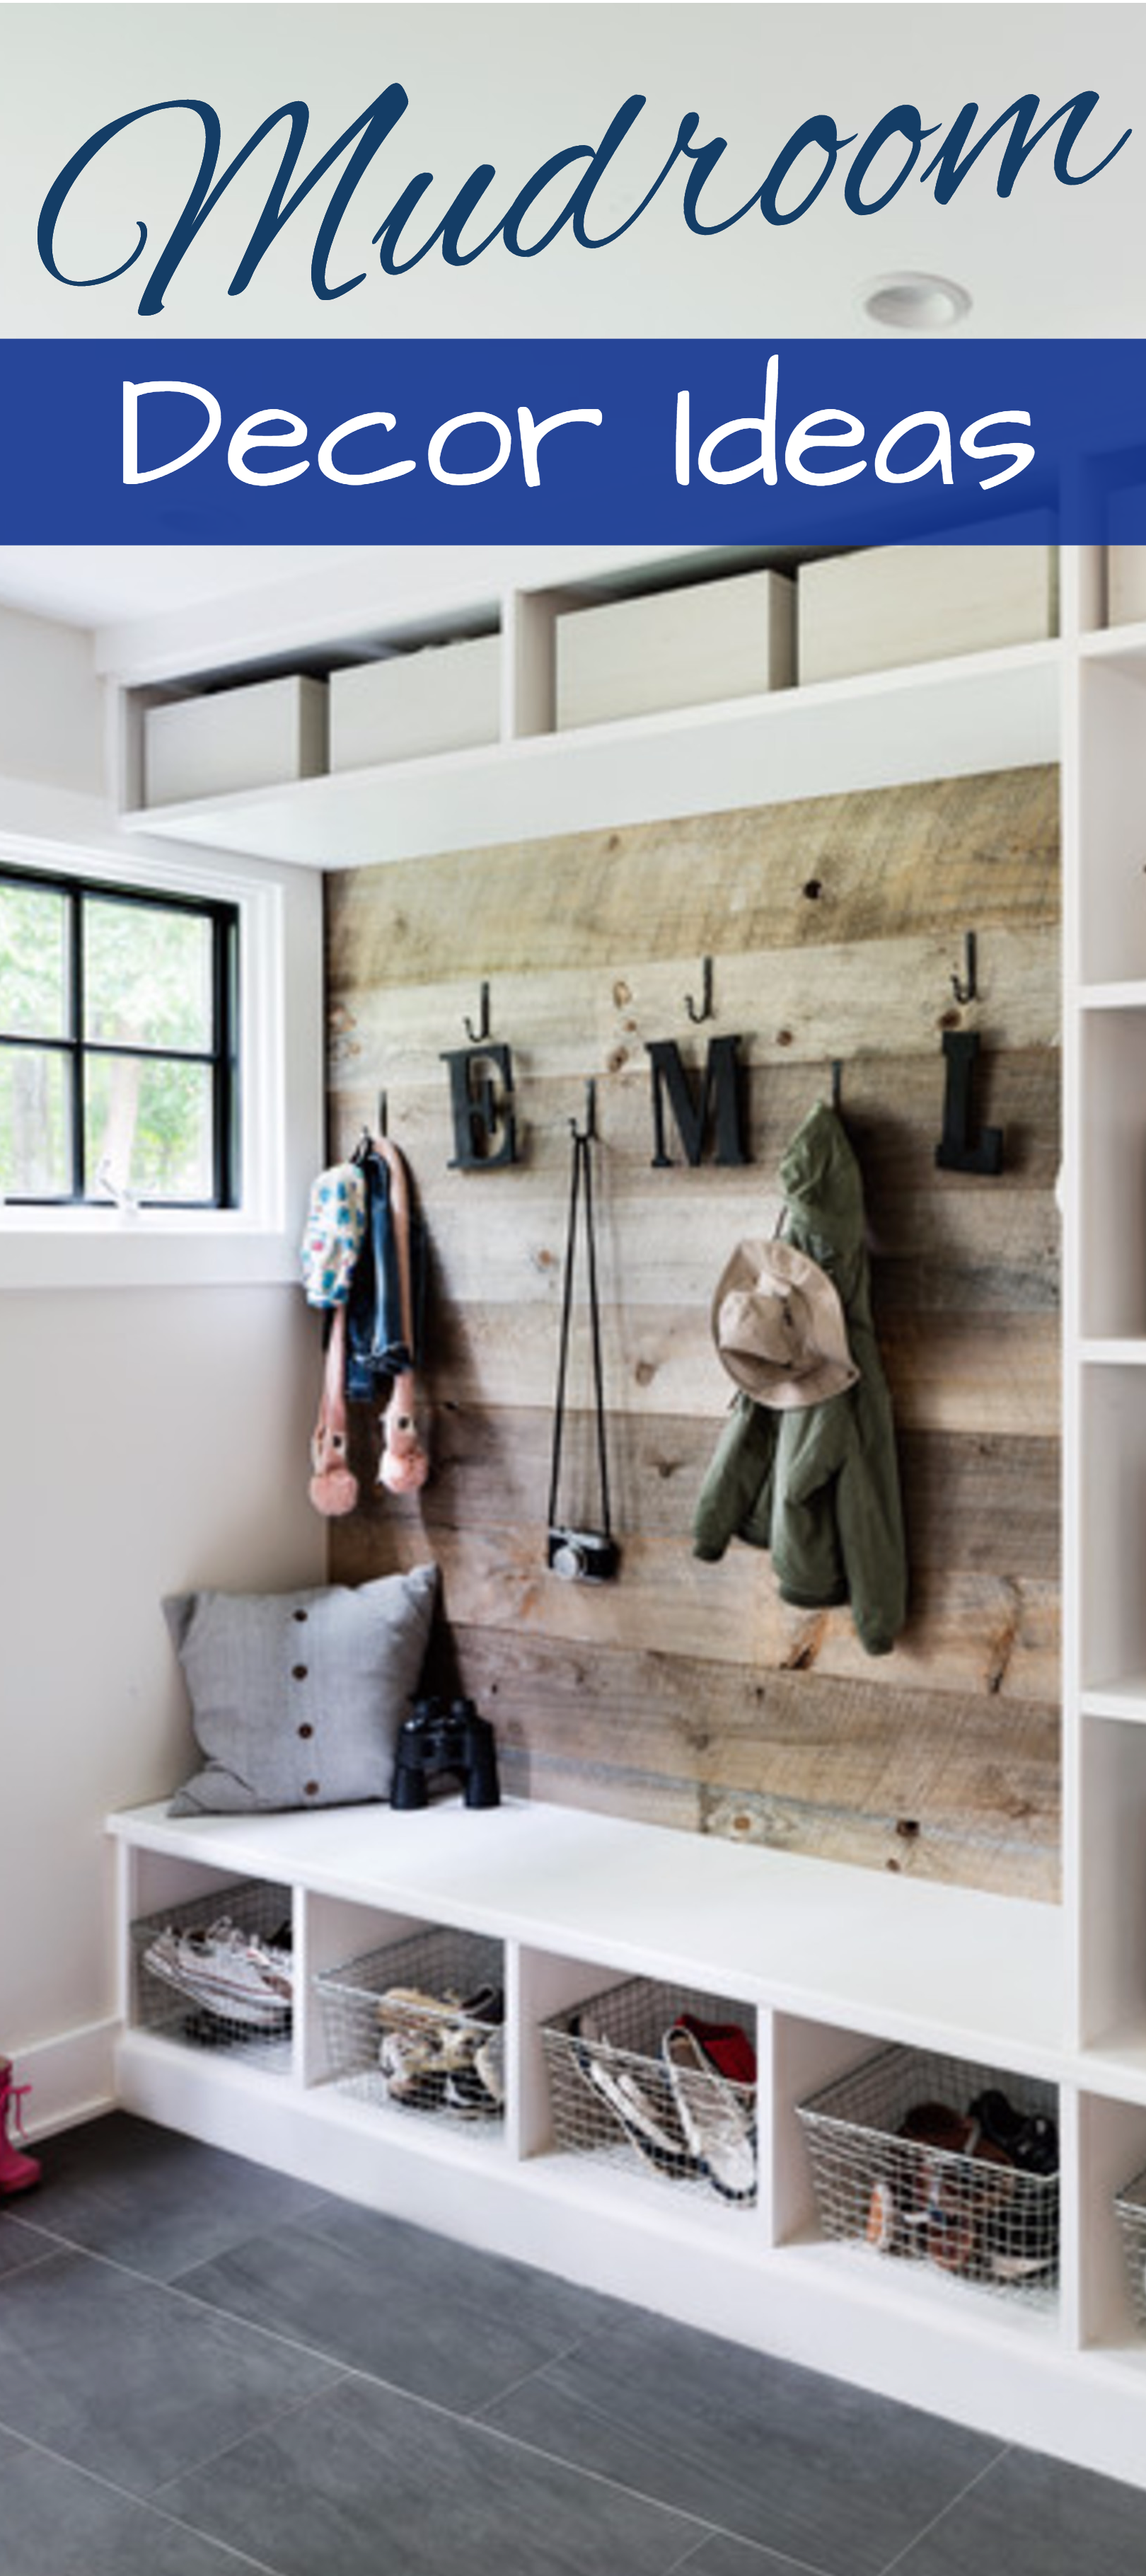 Diy Mudroom Decorating And Design Ideas Great For Mud Rooms Foyer Entryway Too